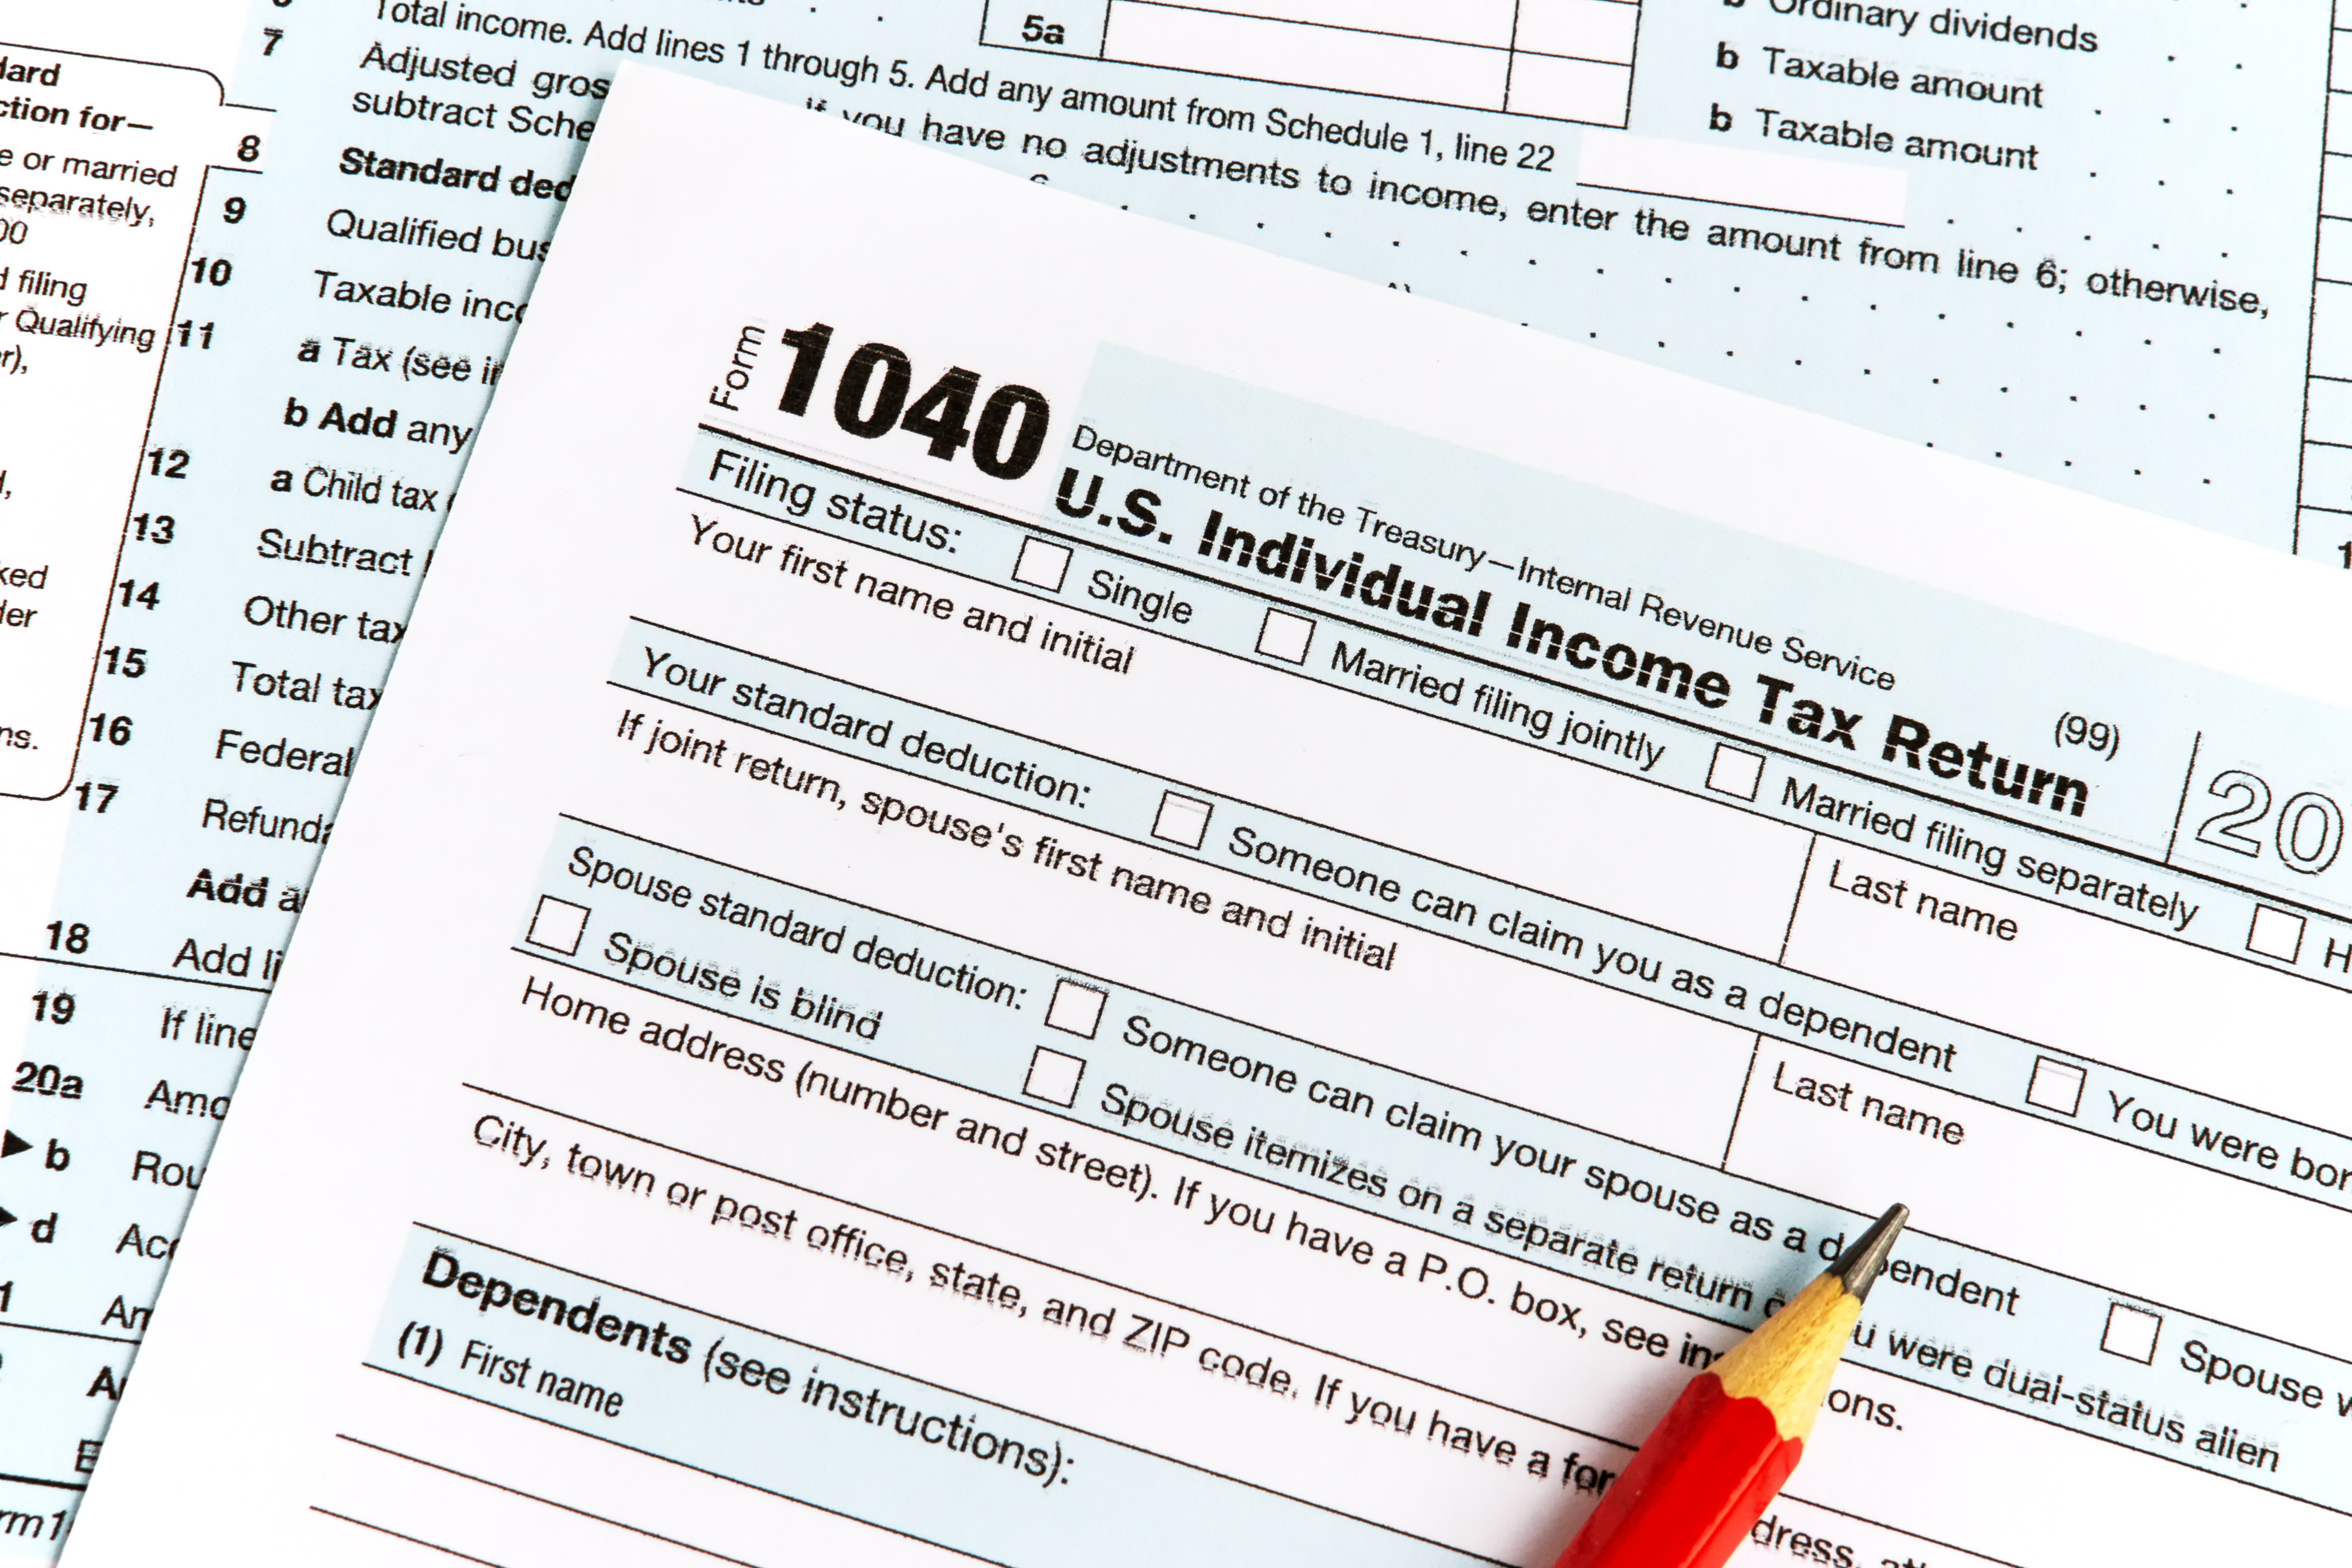 If you don't have the money to pay your tax bill by April 15, know that the IRS offers installment plans that allow you to pay over time.